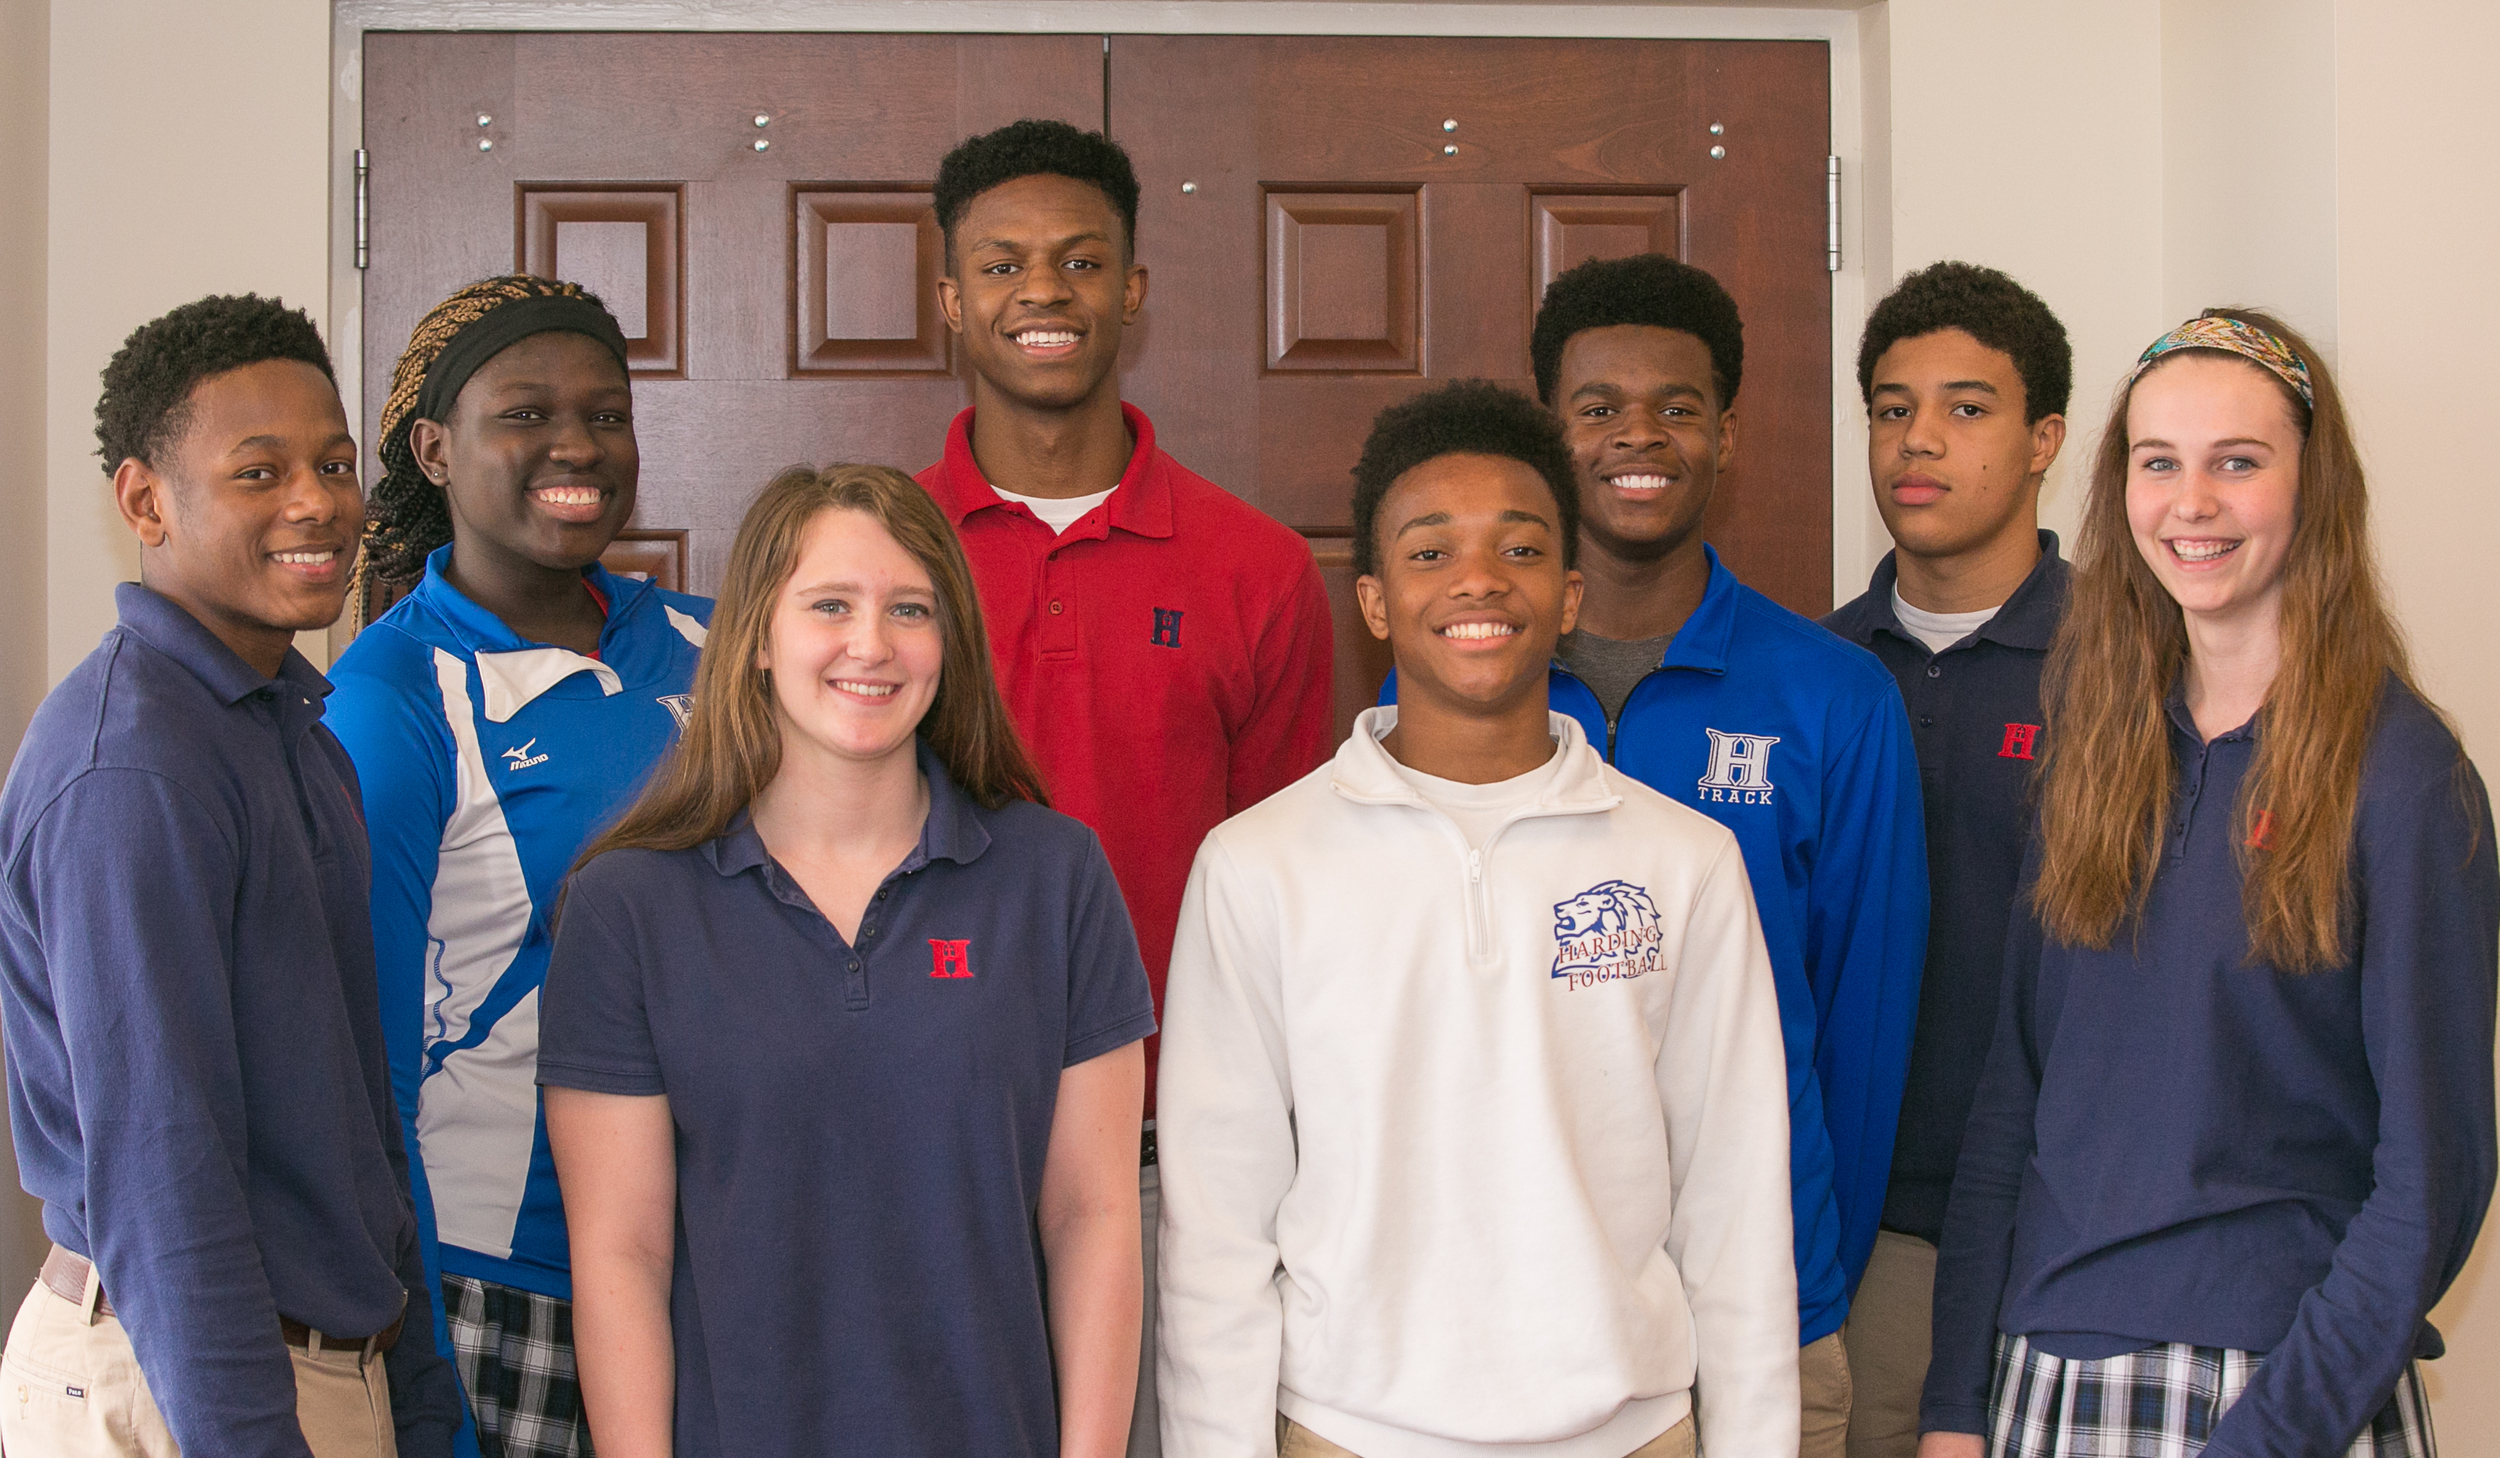 Front row: Chris Smith, Alyssa Hale, Calvin Austin, Anna Horner Back row: Antoinette Lewis, Anthony Yarbrough, Troy West, James Townsdin